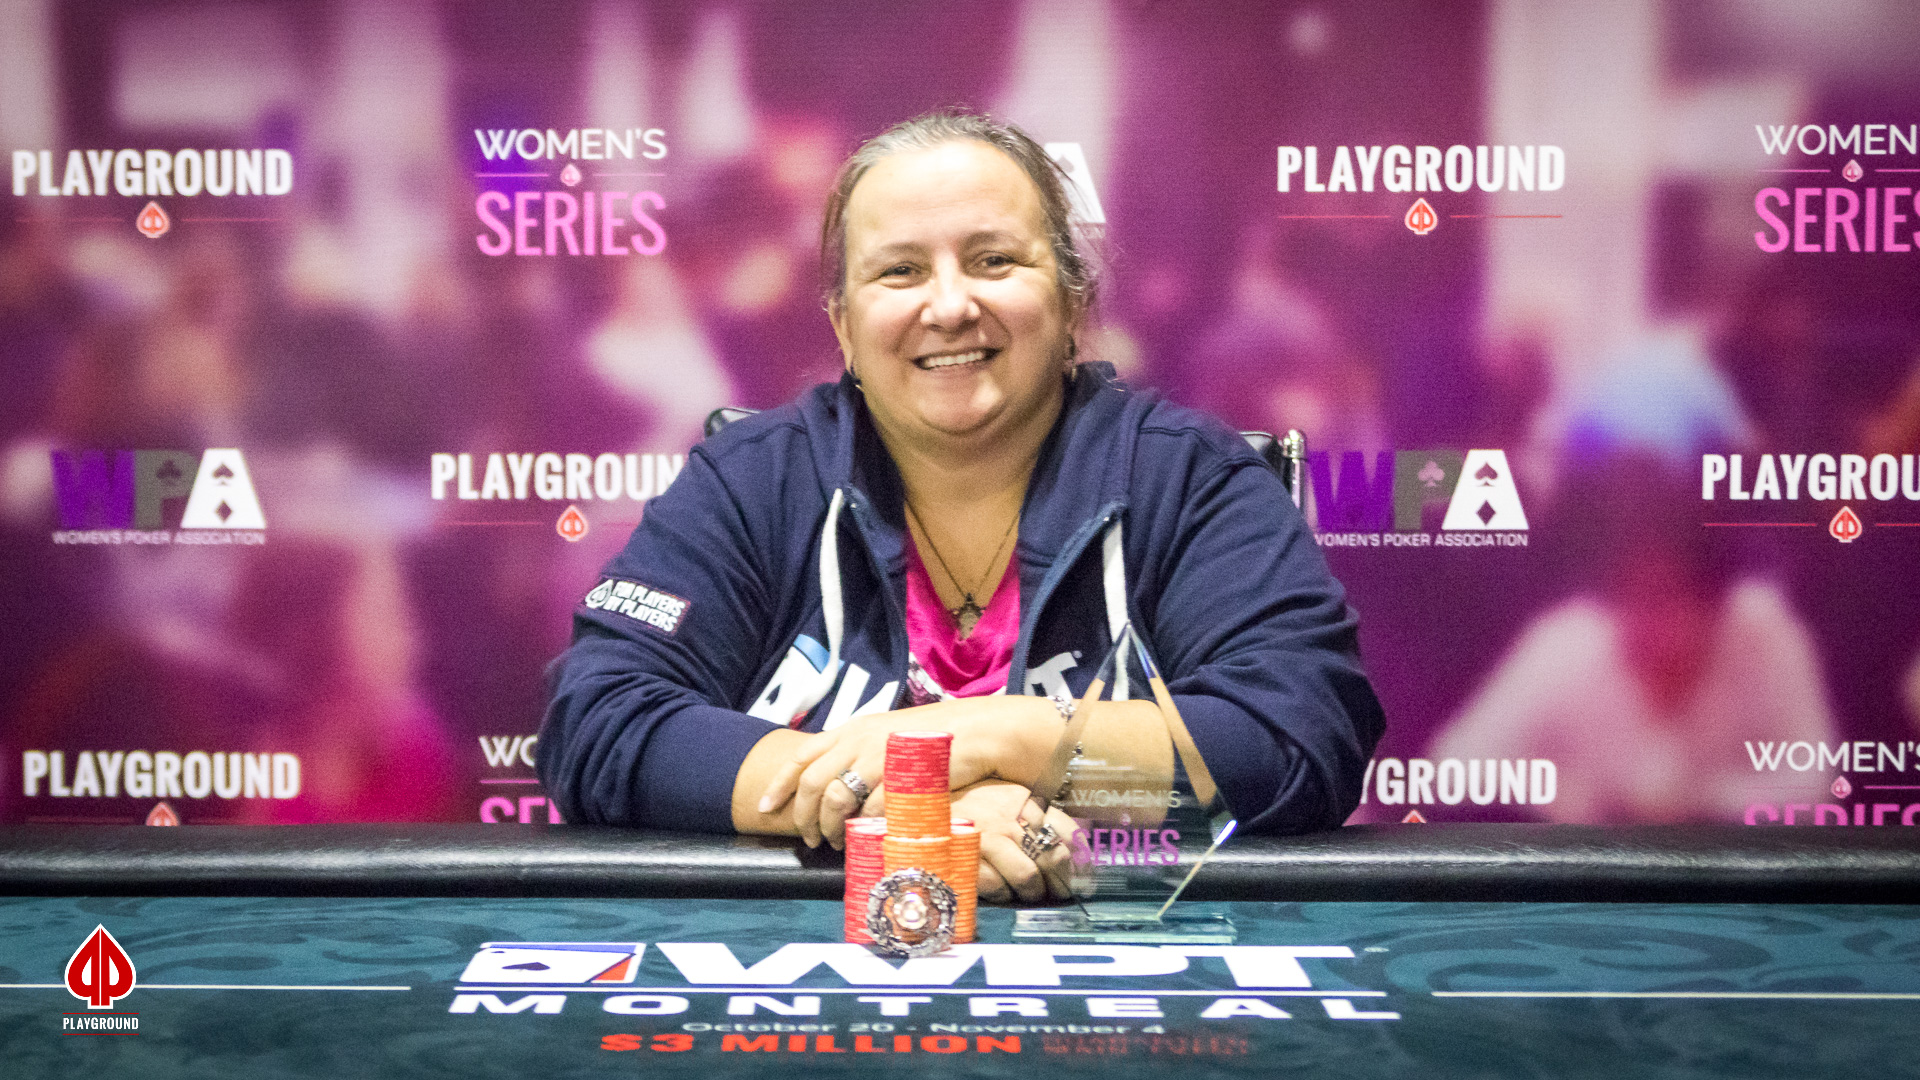 Women's Series Event #3 Champion: Cynthia Paquette